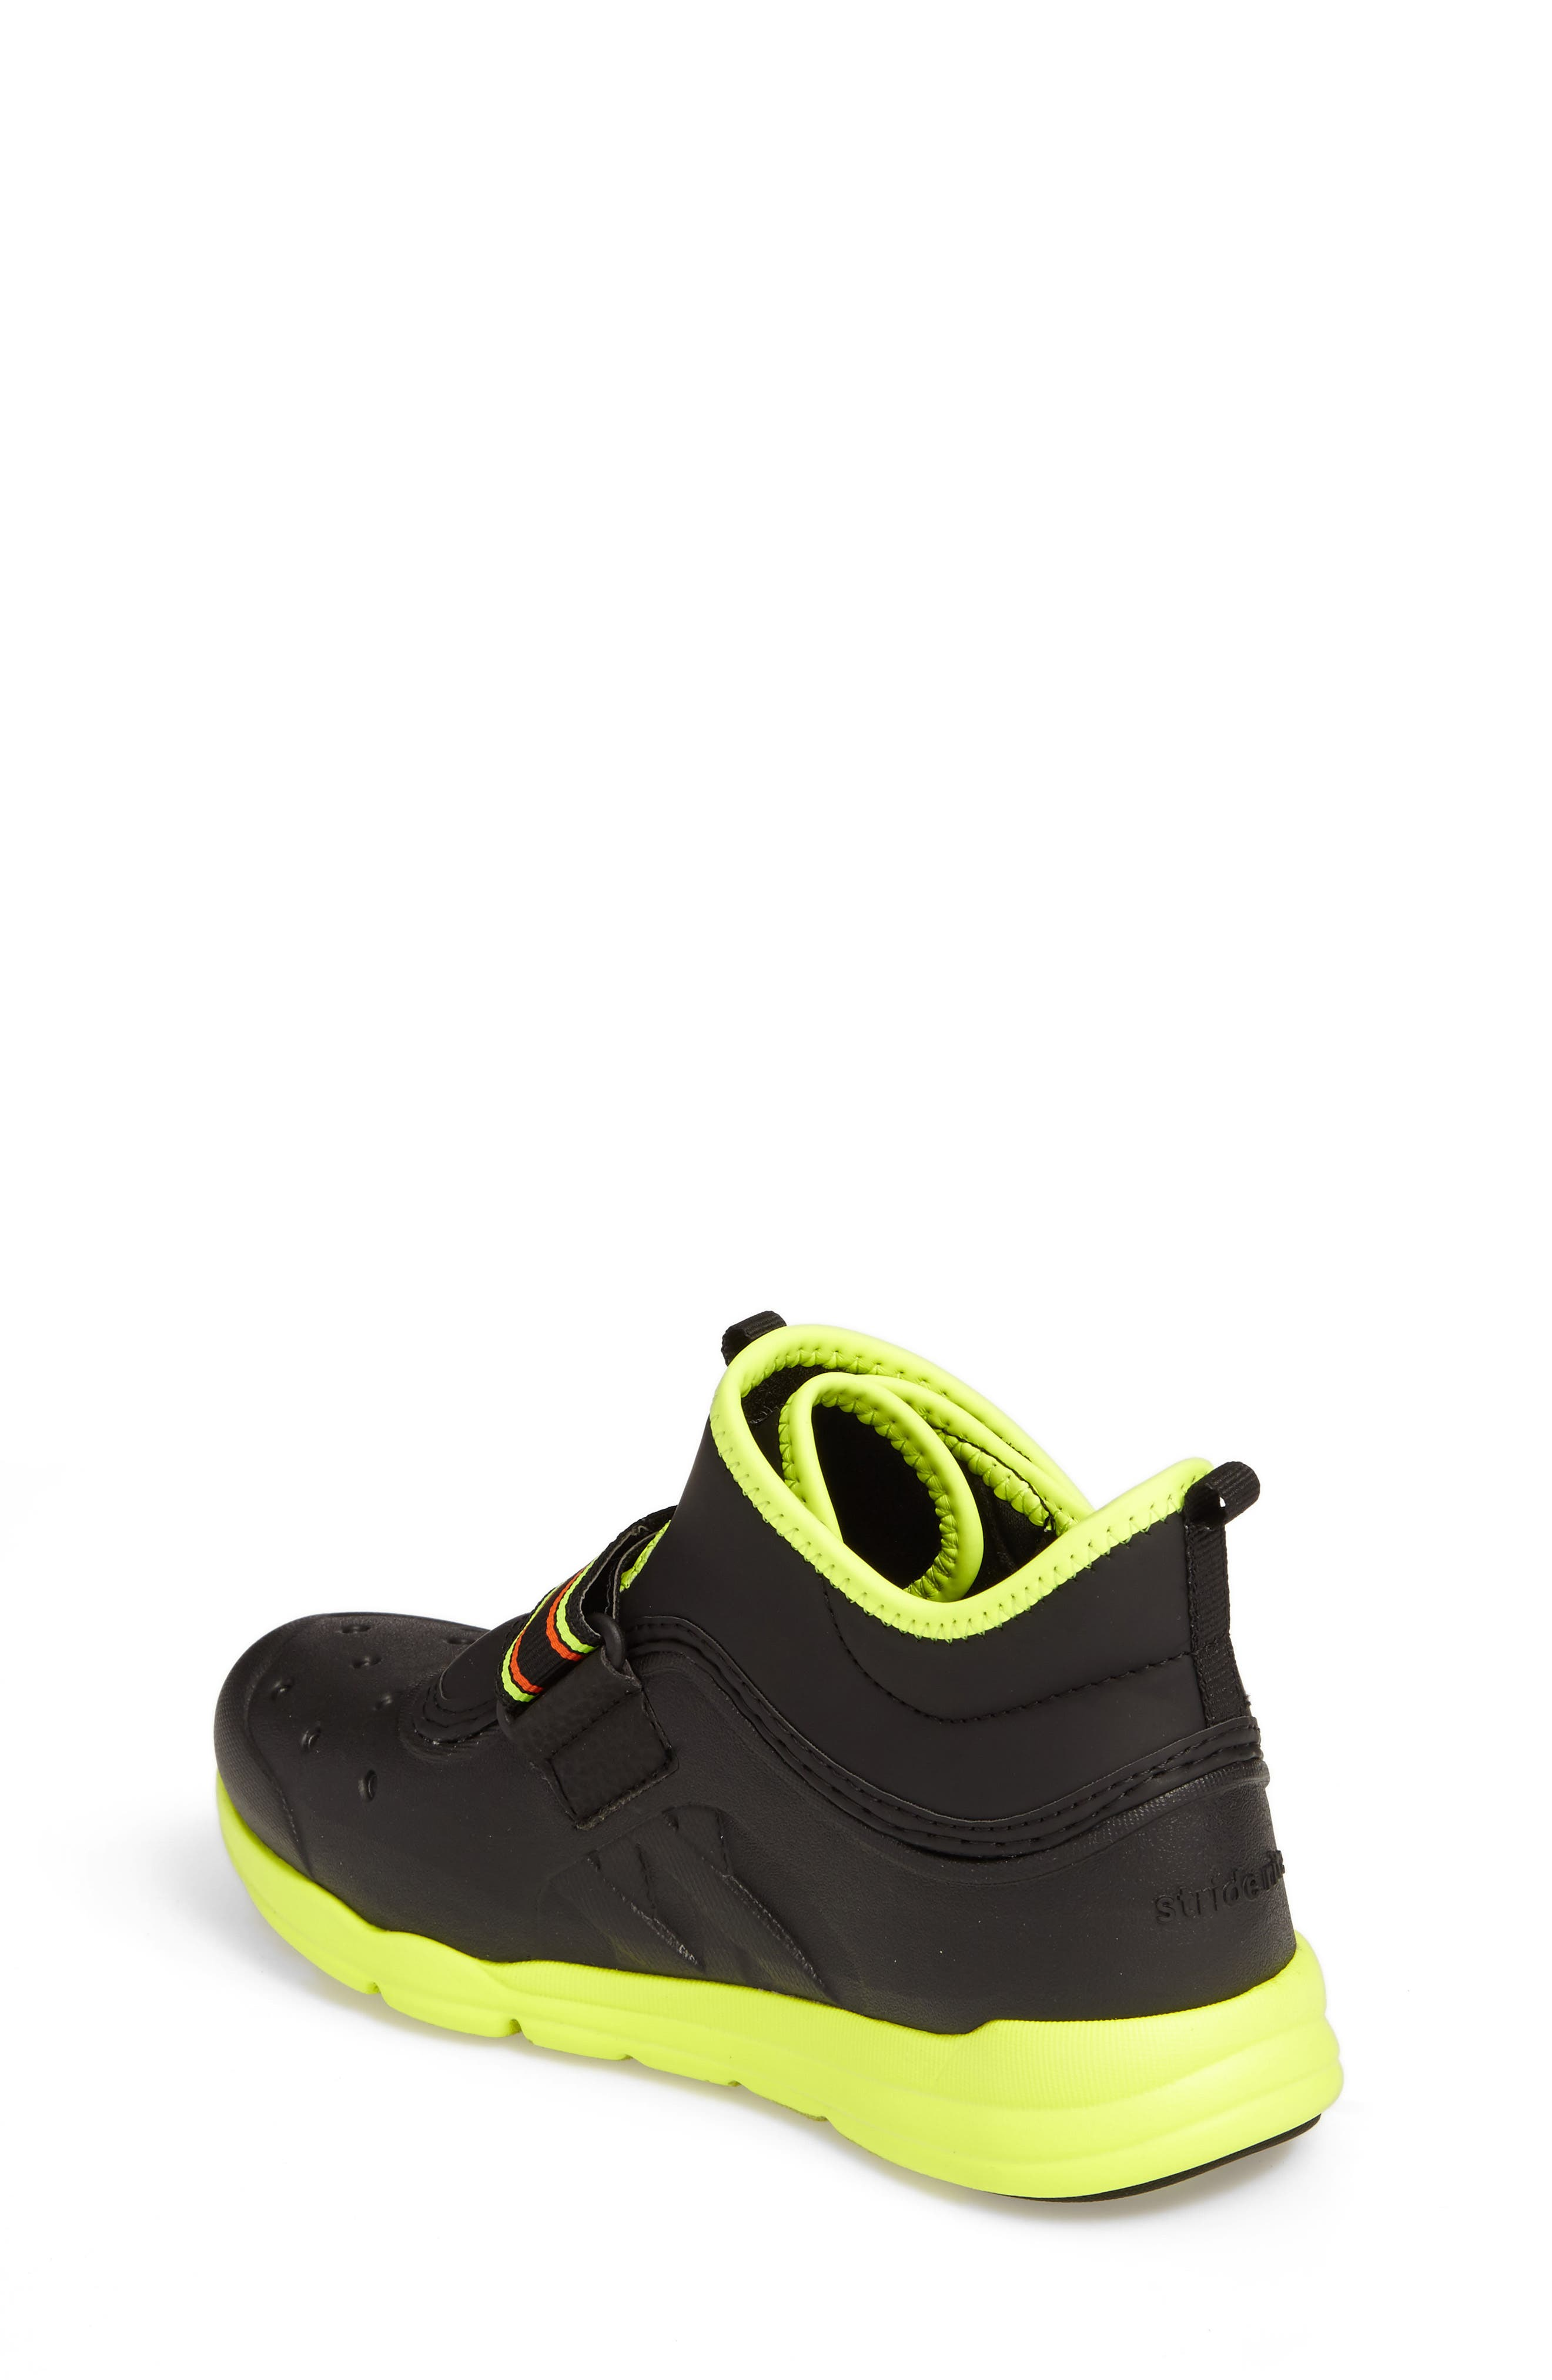 Made2Play<sup>®</sup> Phibian Mid Top Sneaker,                             Alternate thumbnail 3, color,